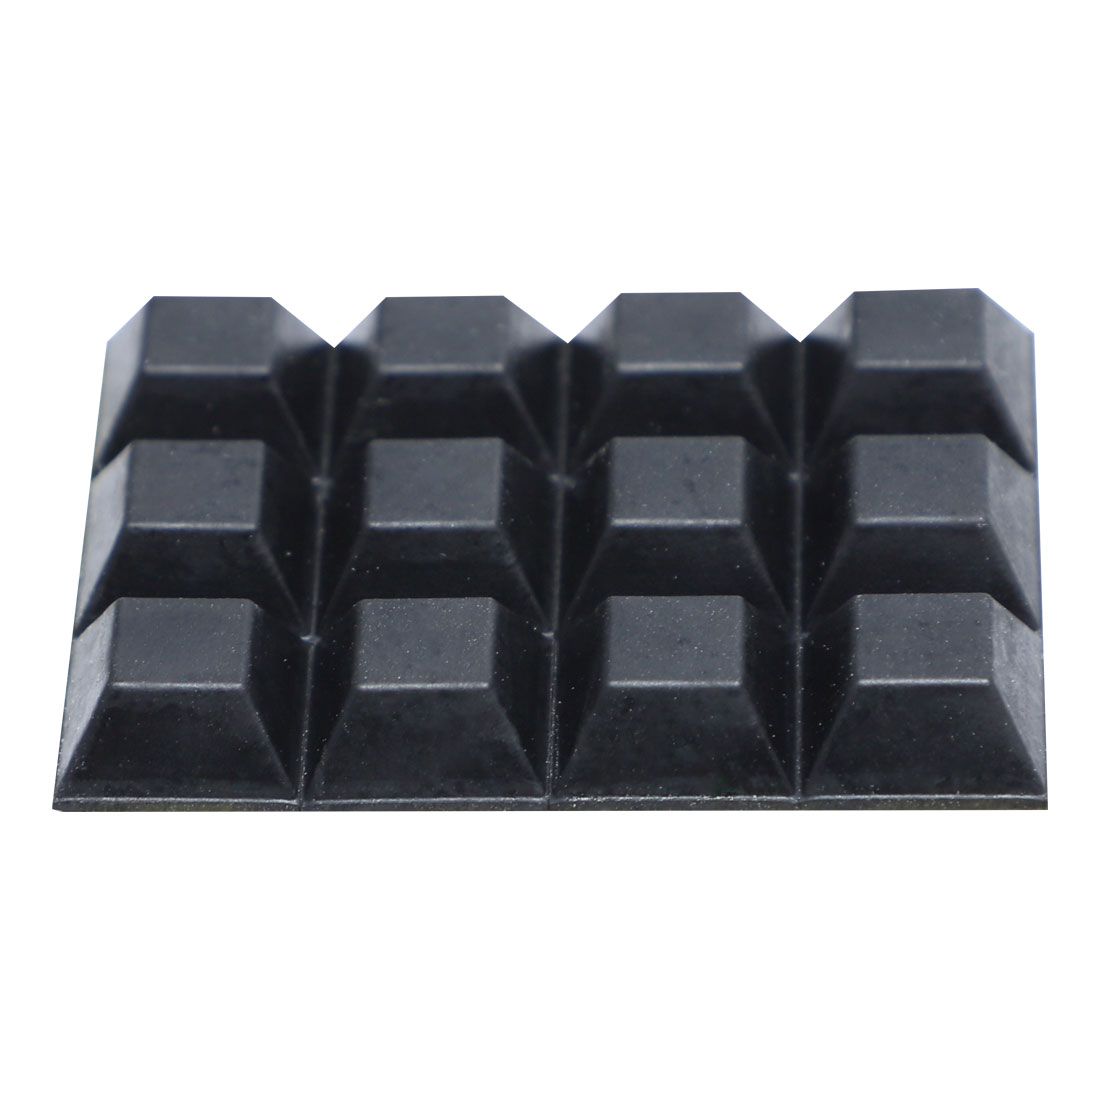 Chair Furniture Square 12mmx12mmx6mm Self Adhesive Rubber Pads 12 in 1